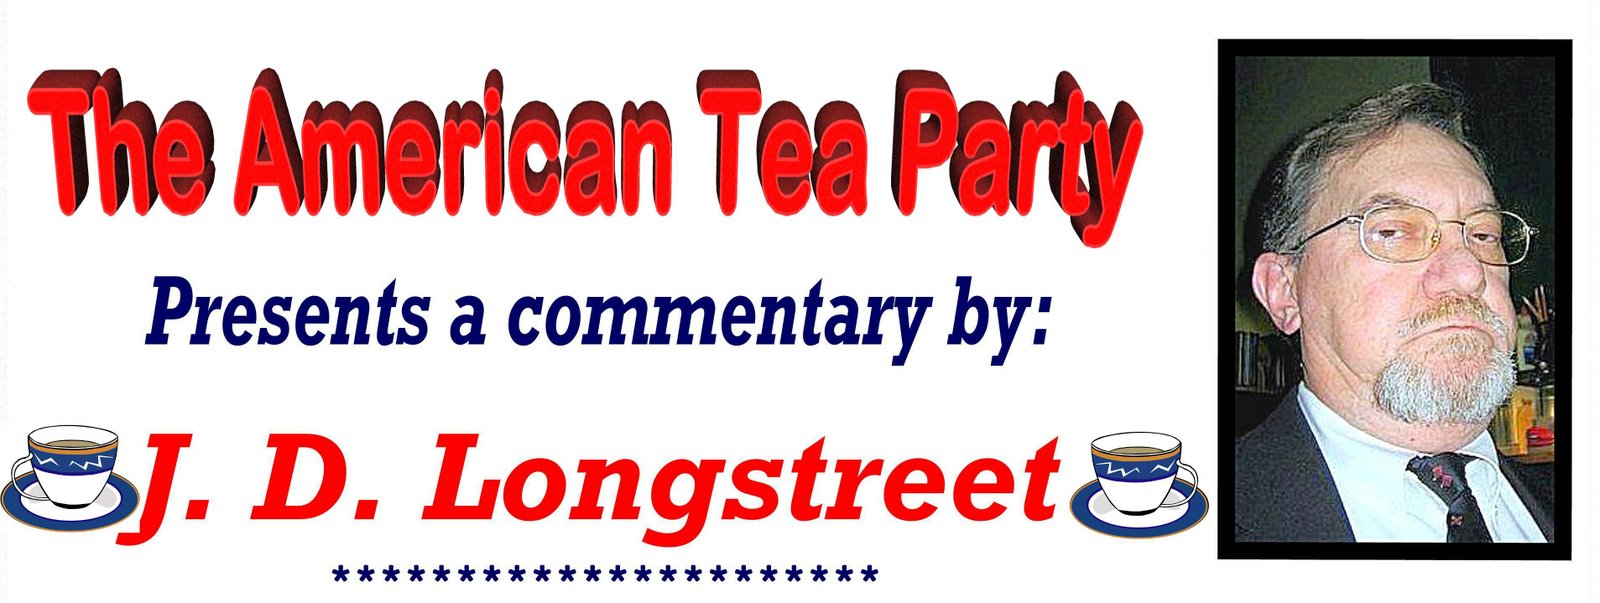 [American+Tea+Party+Header+]